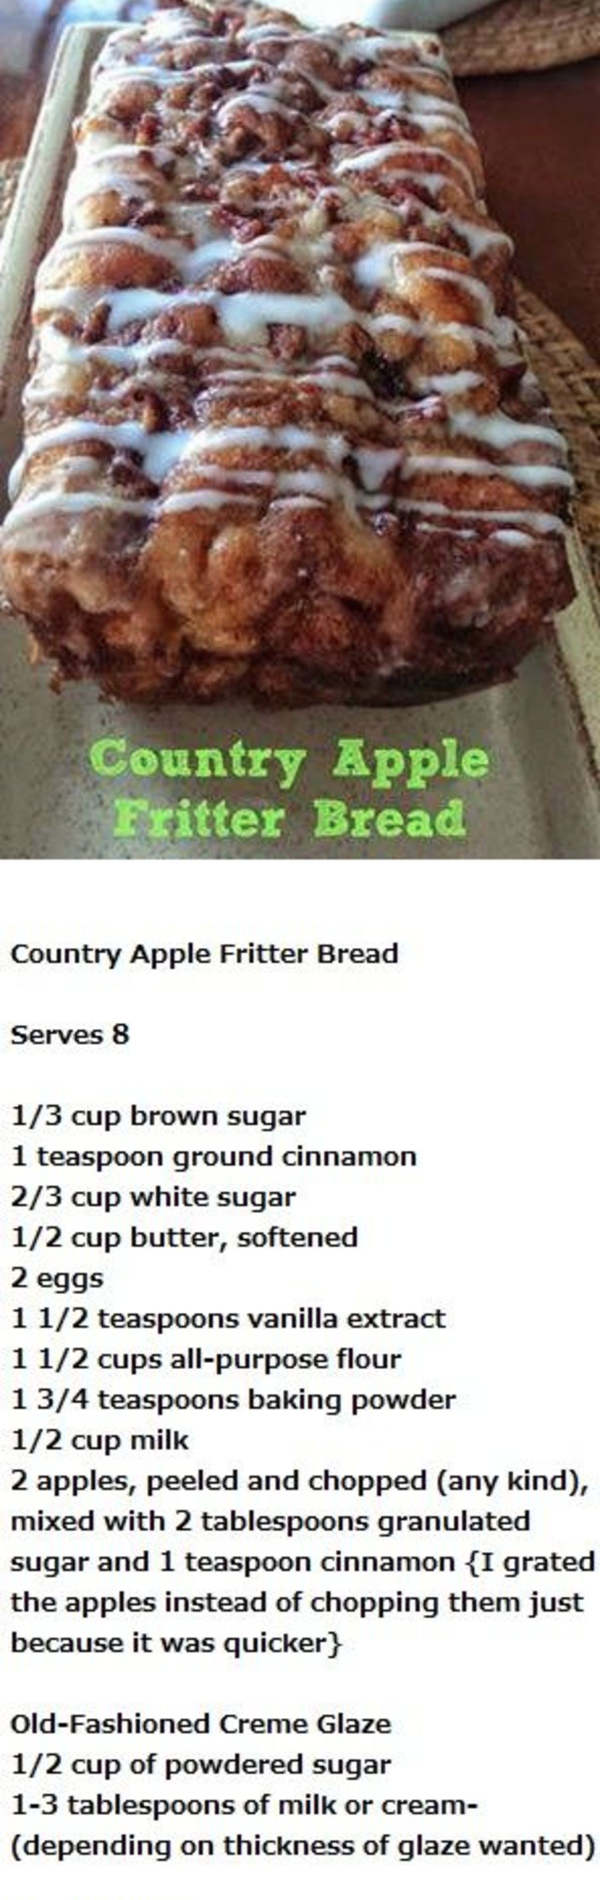 UNIQUE non-traditional Thanksgiving or Christmas dessert idea - this apple bread is OUTSTANDING and so delicious!  Also makes a great homemade gift or hostess gift and is GREAT when you have company to have out to snack on.